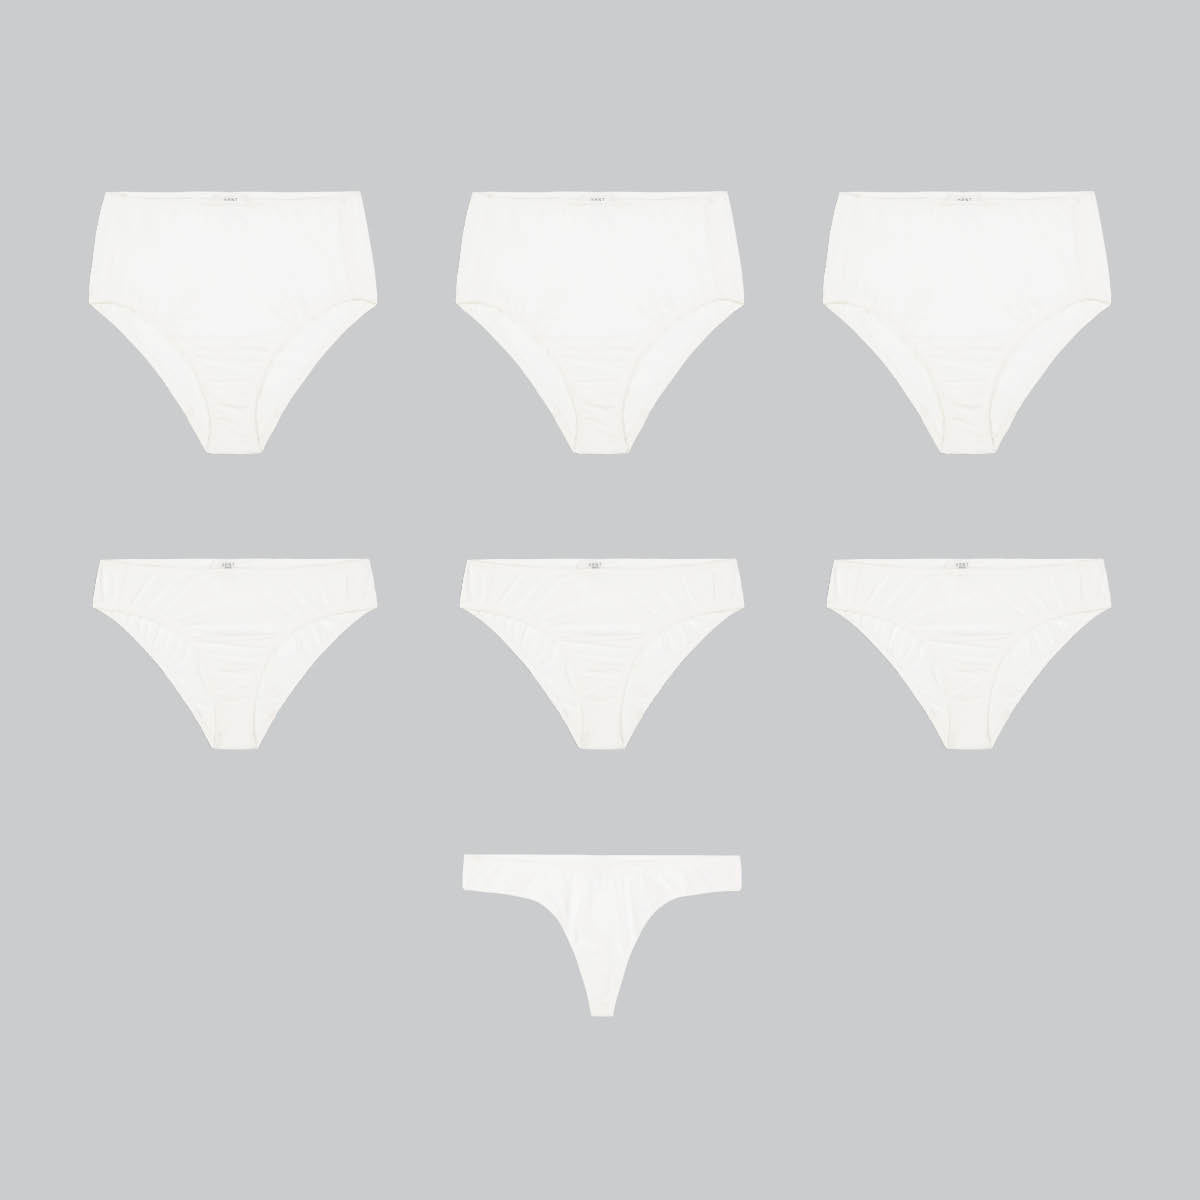 seven organic cotton underwear on grey background